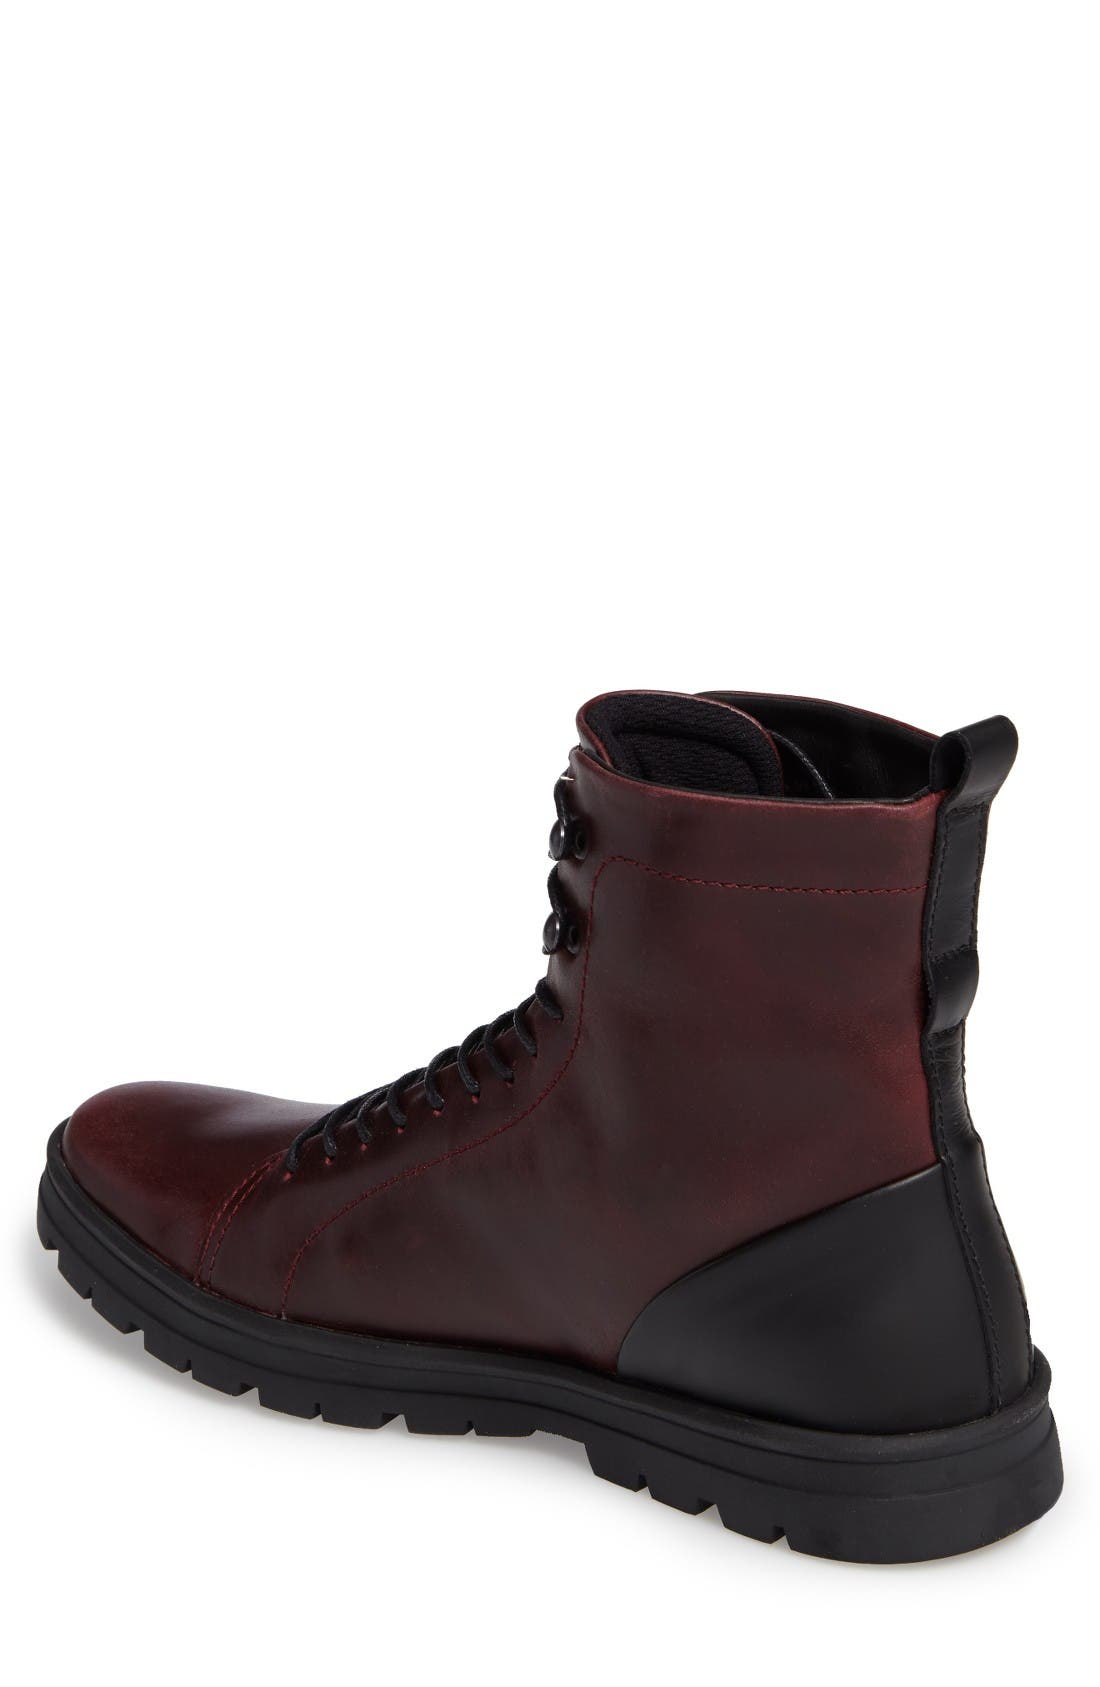 Hudson Waterproof Tall Boot,                             Alternate thumbnail 2, color,                             Bordeaux Leather